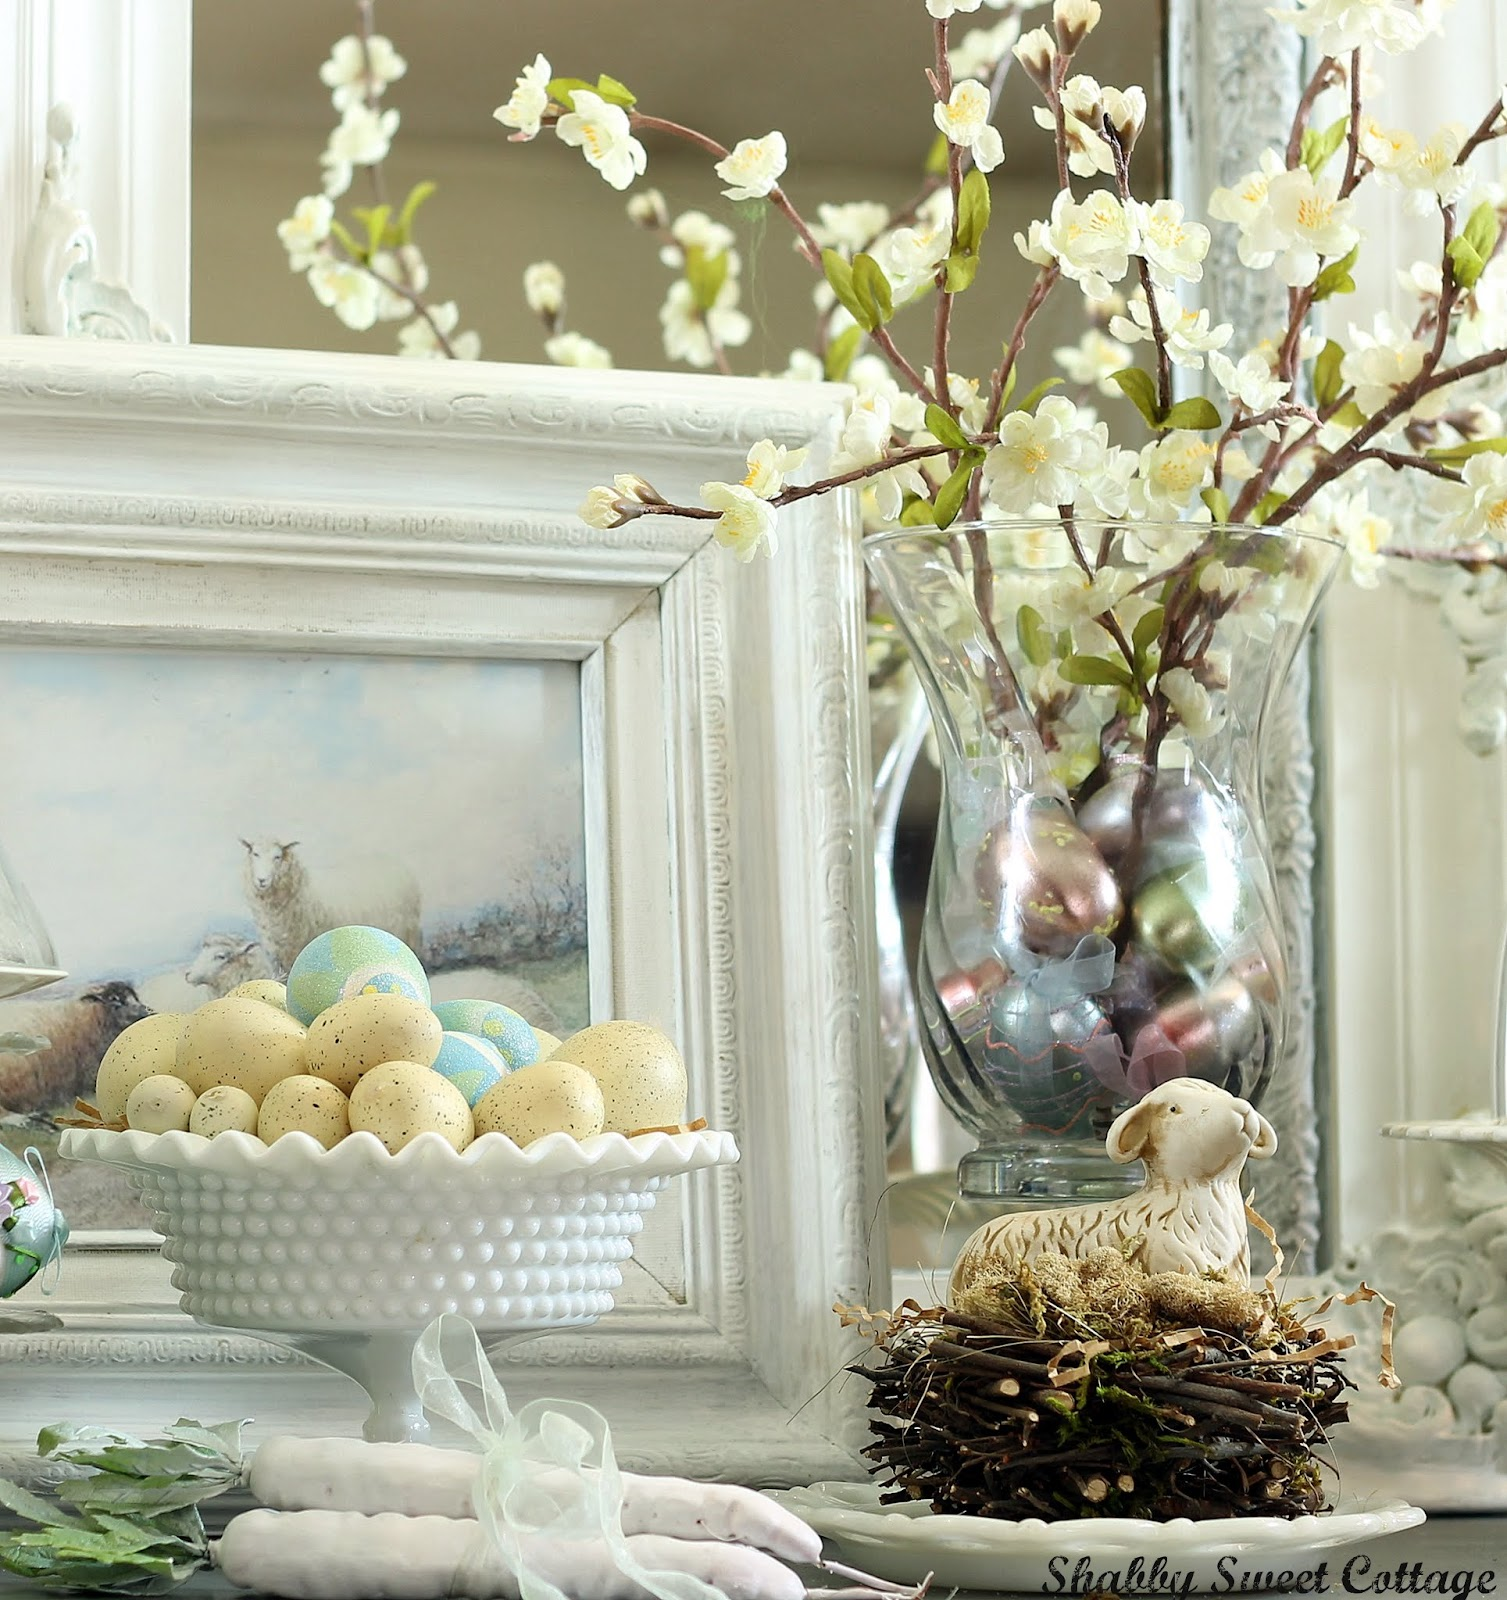 Spring Decorating: Shabby Sweet Cottage: March 2012